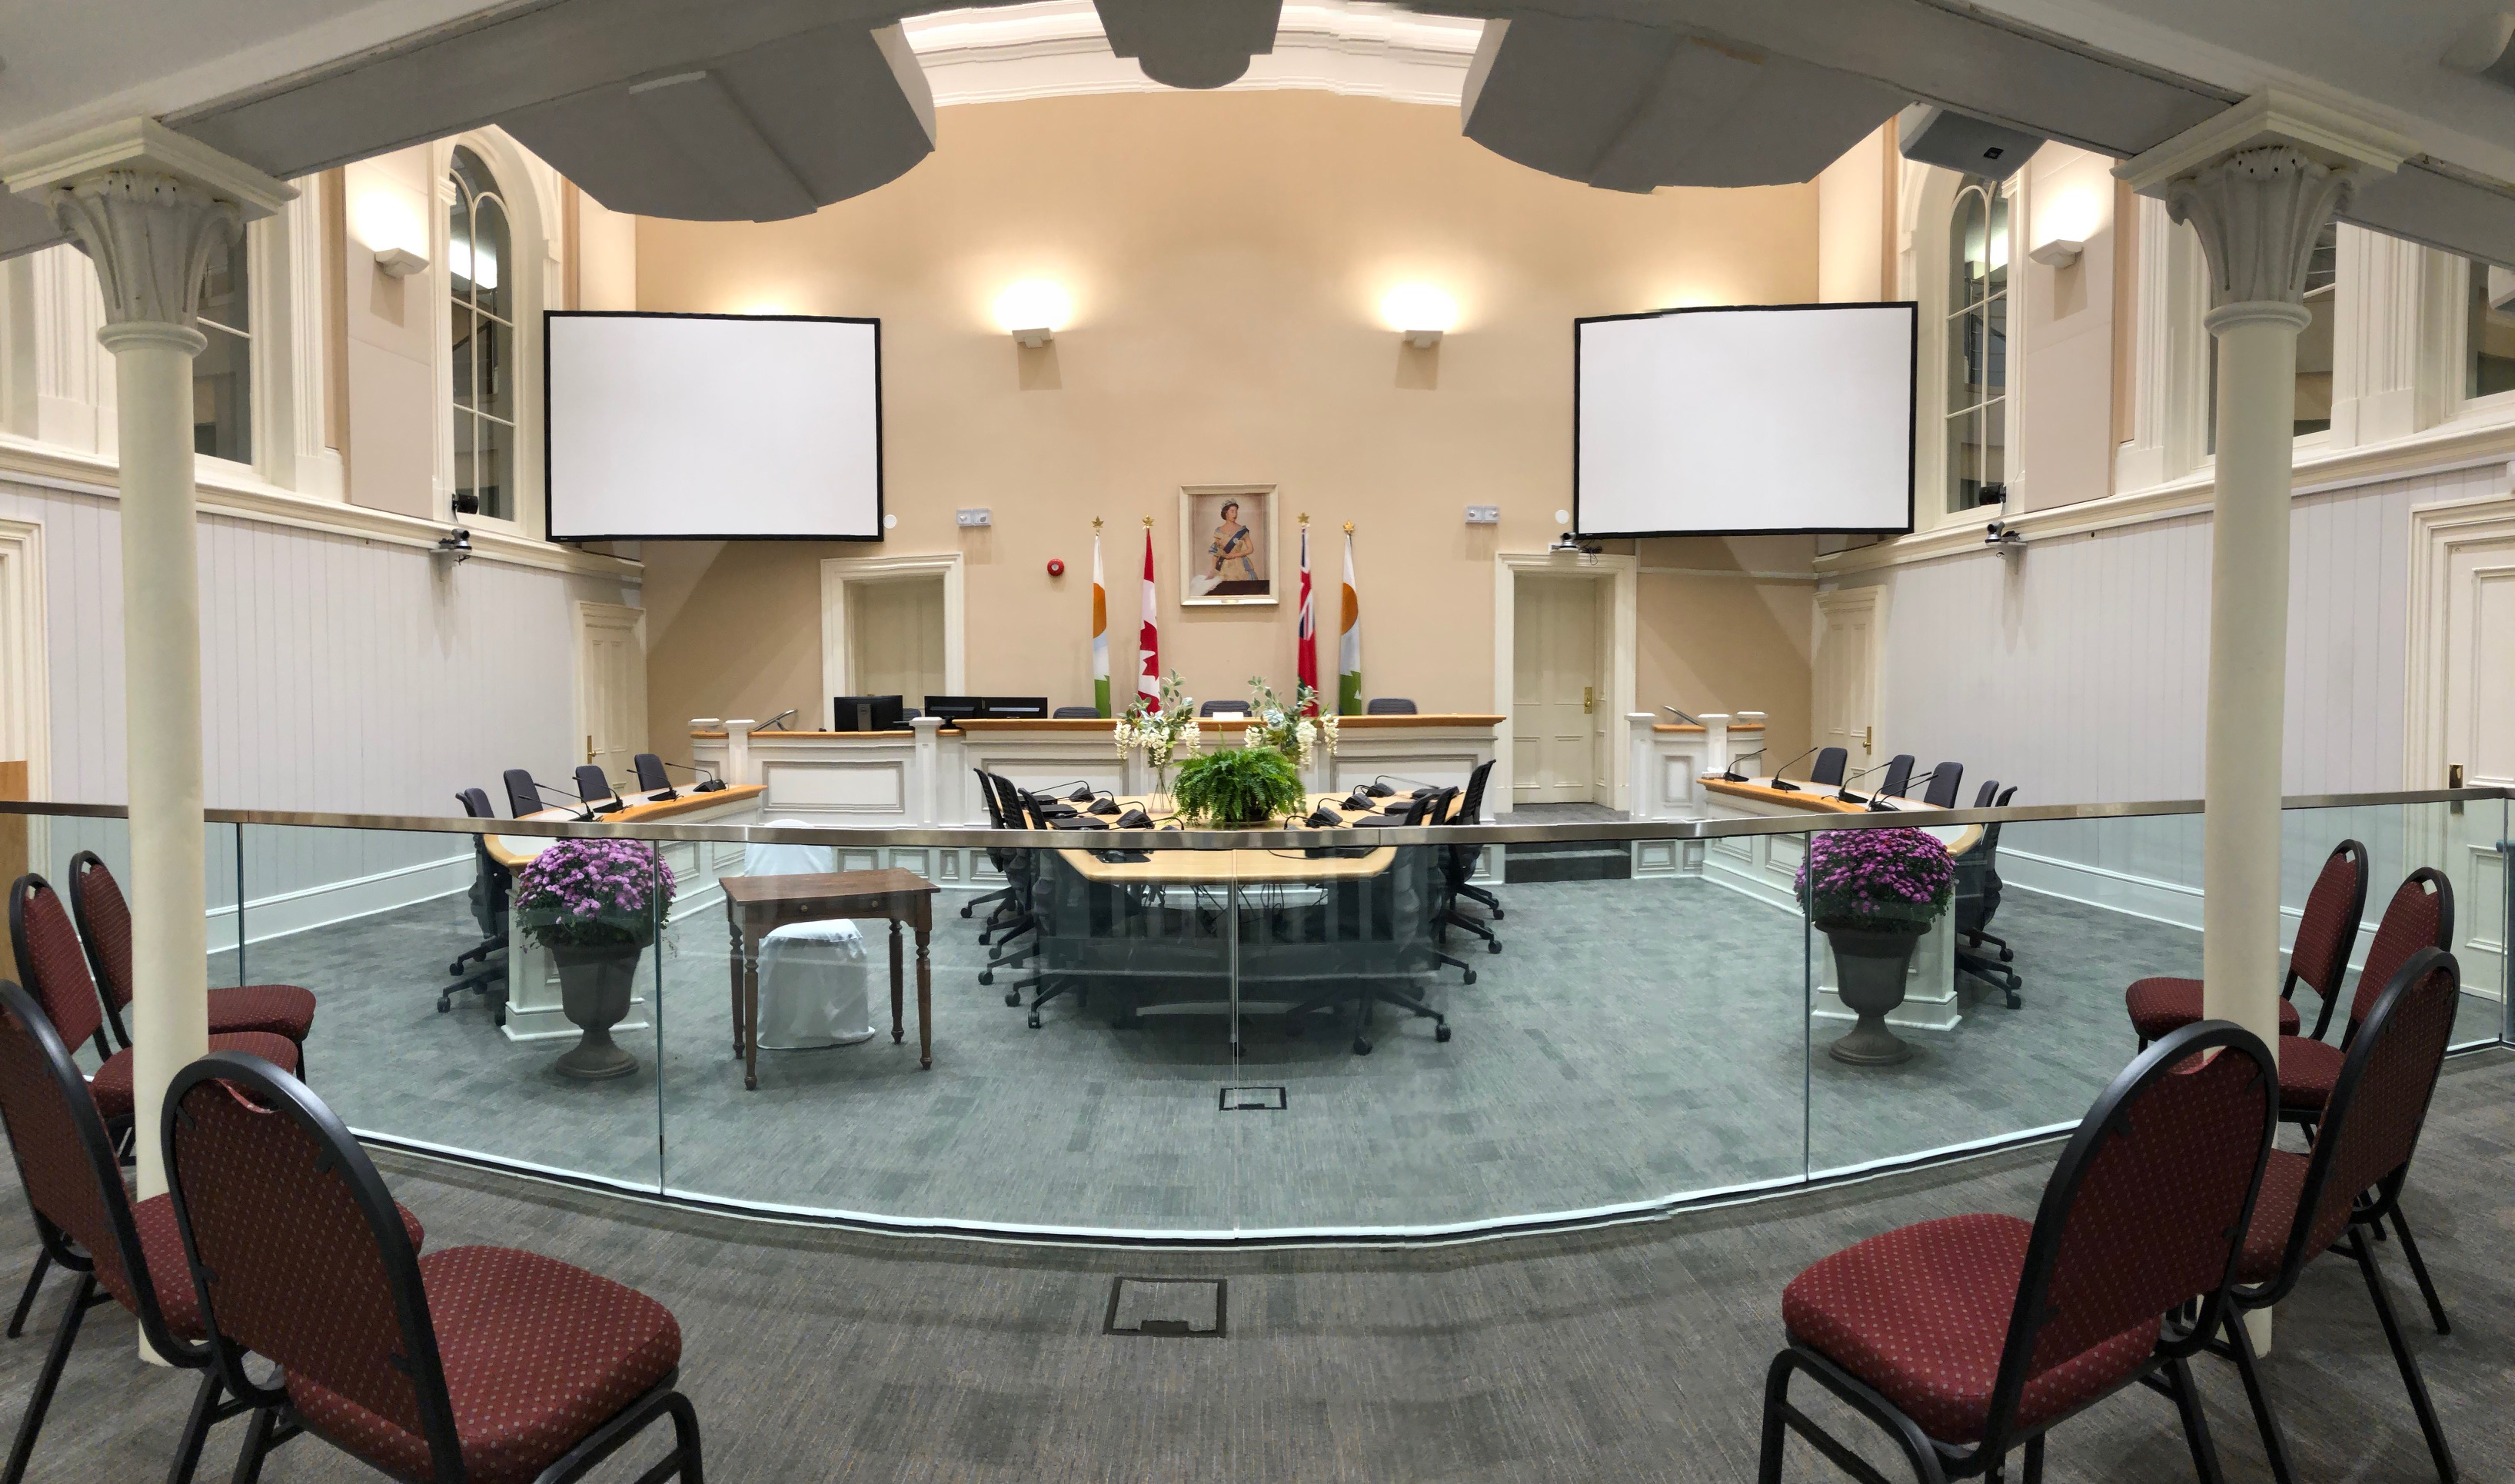 Kawartha Lakes Council Chambers decorated for a wedding